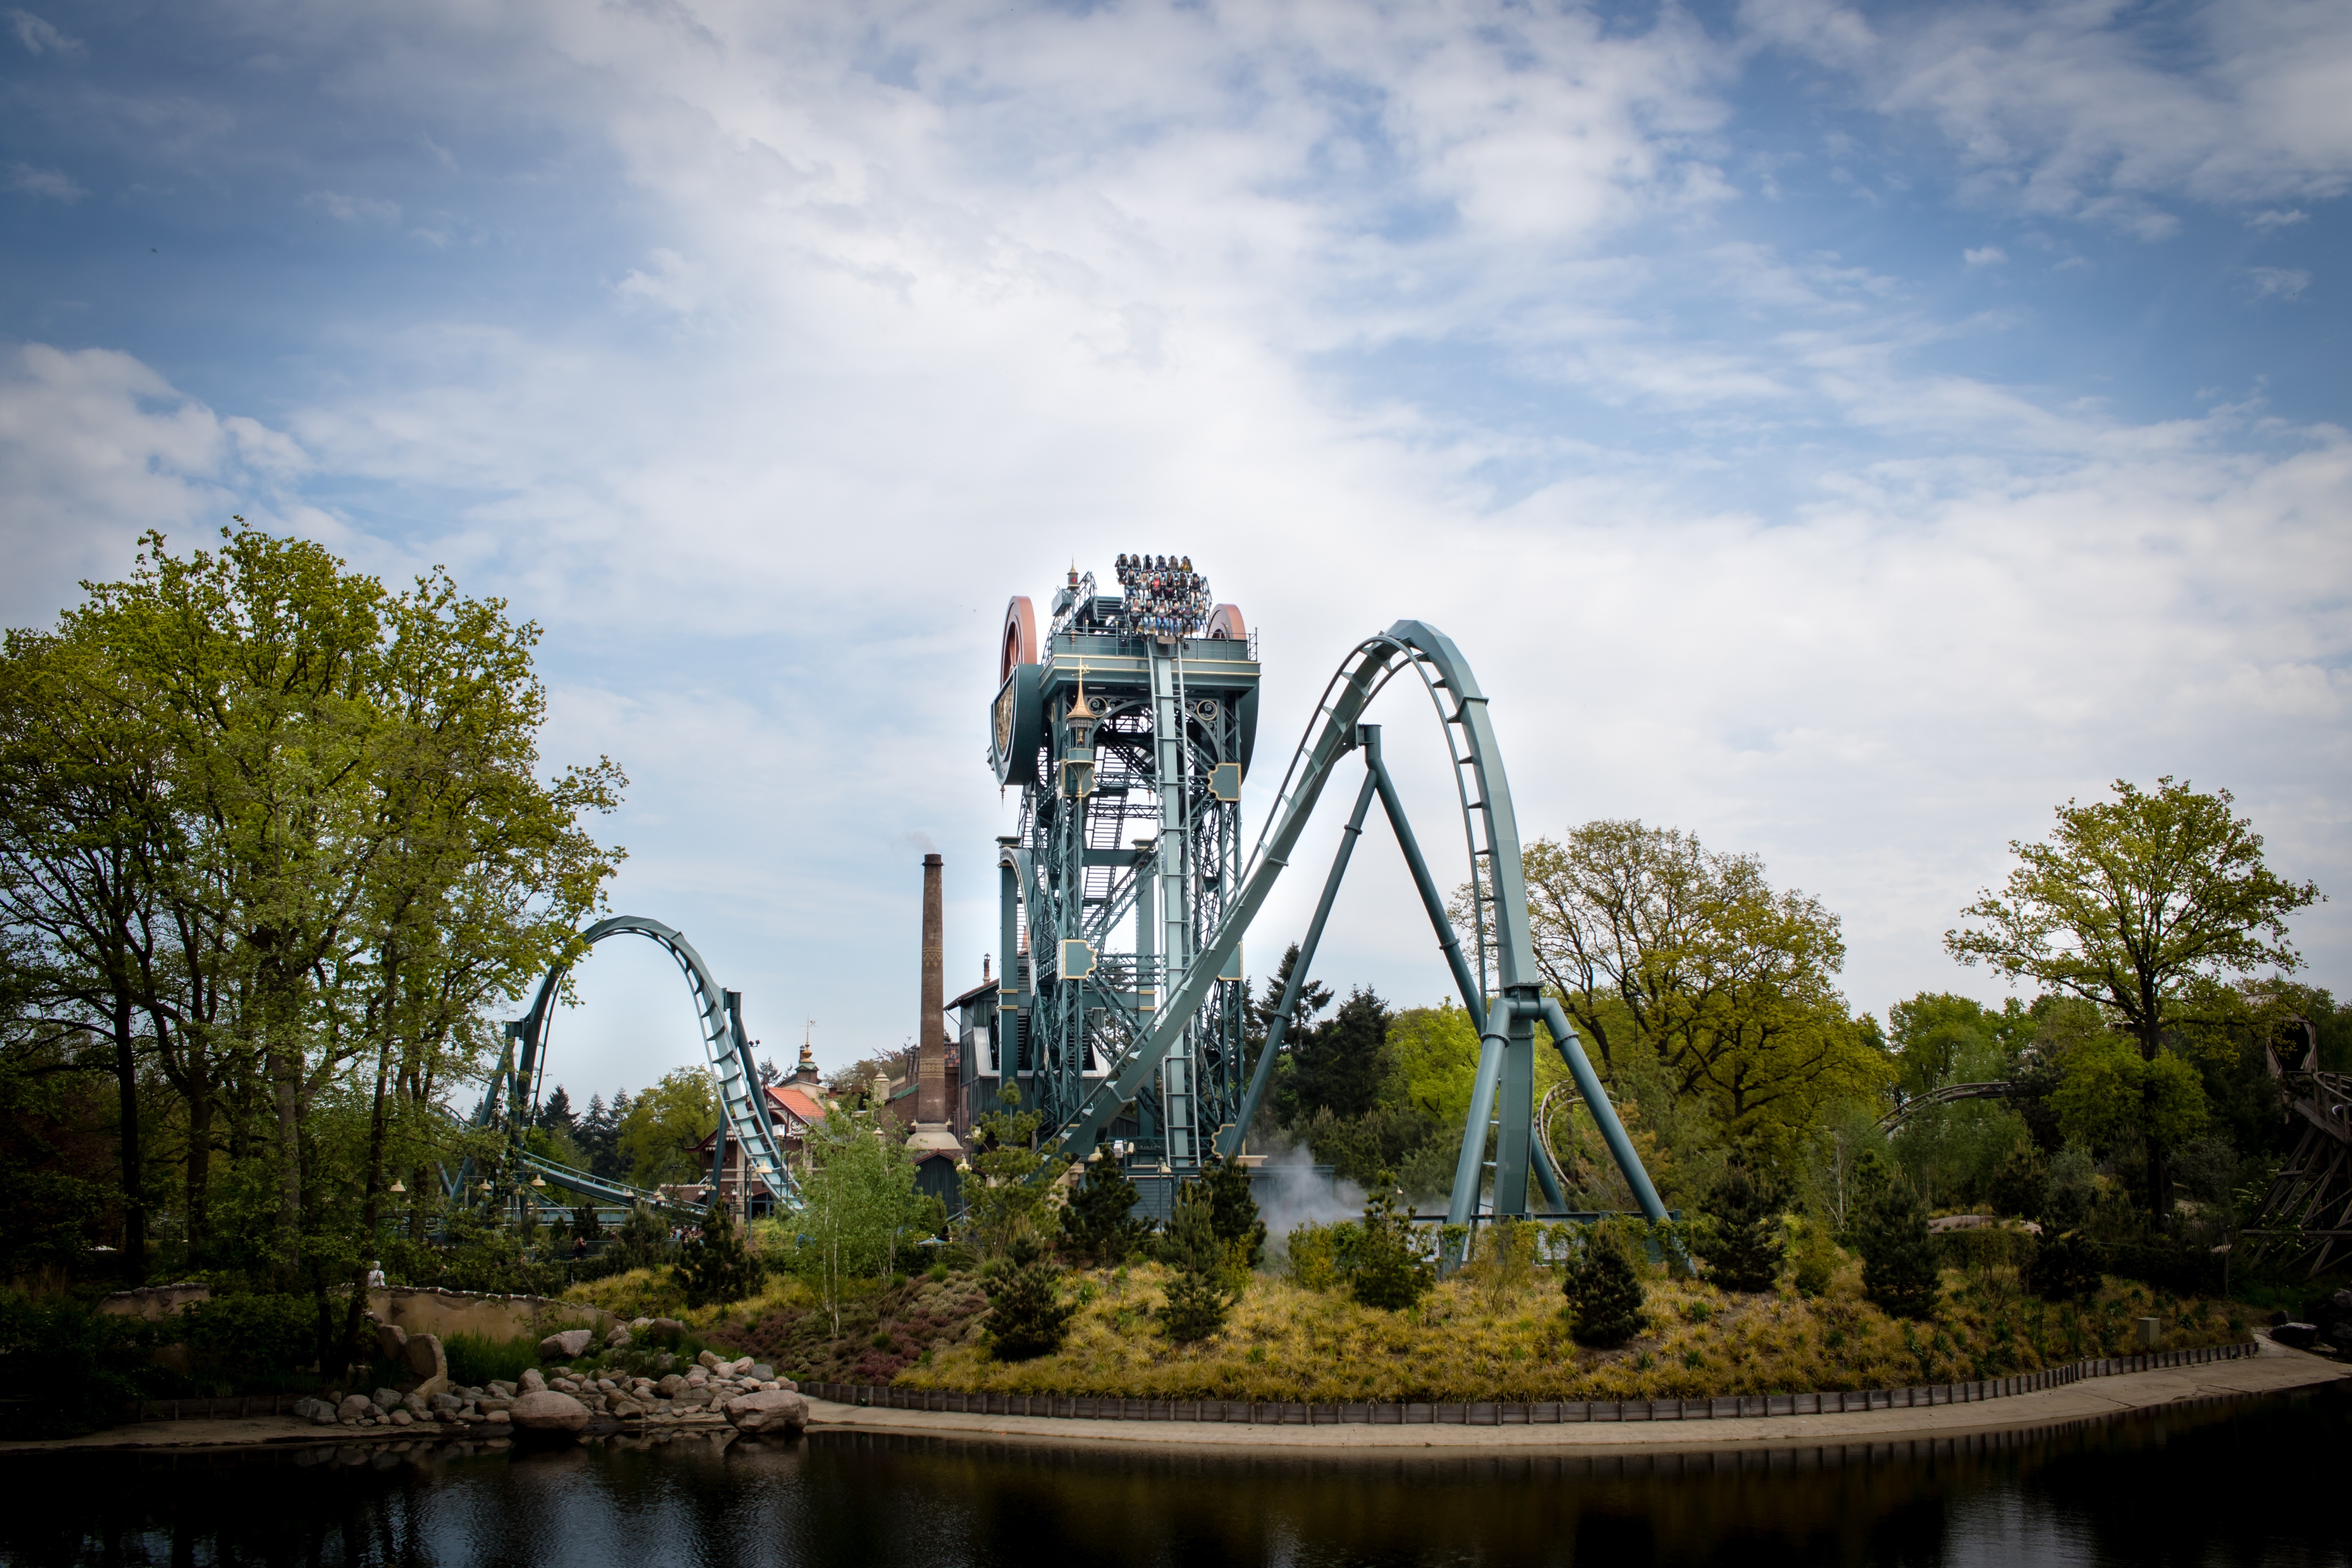 Our list of the best theme parks in Europe